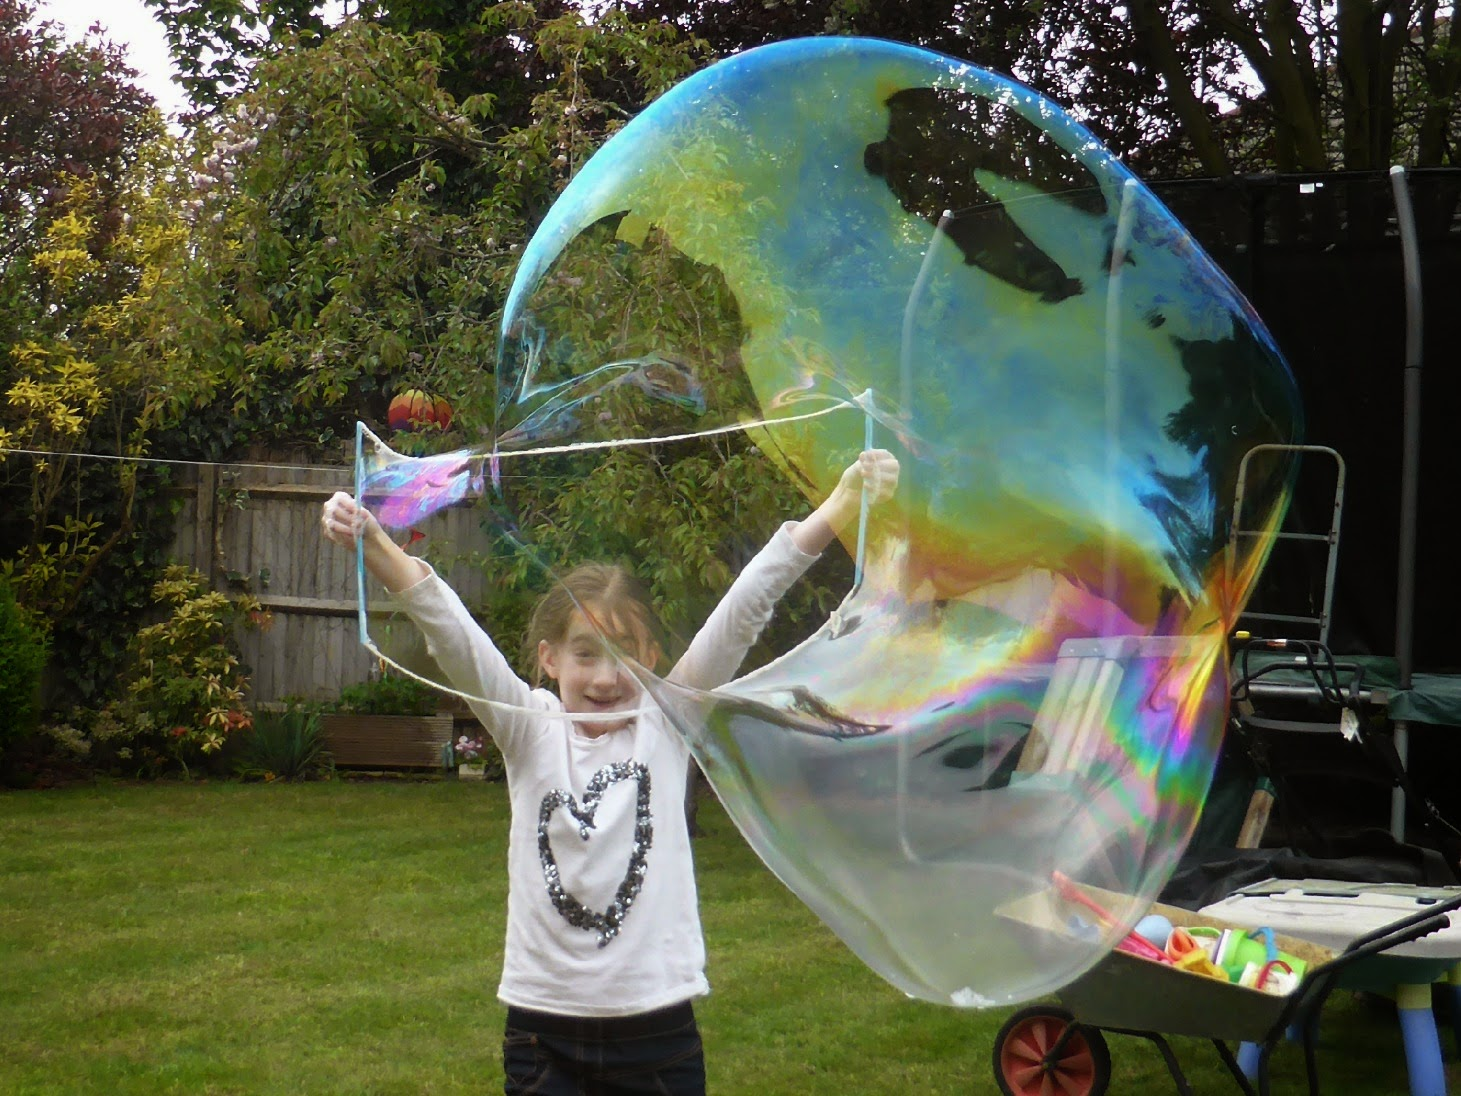 How to make your own huge, GIANT Bubbles!